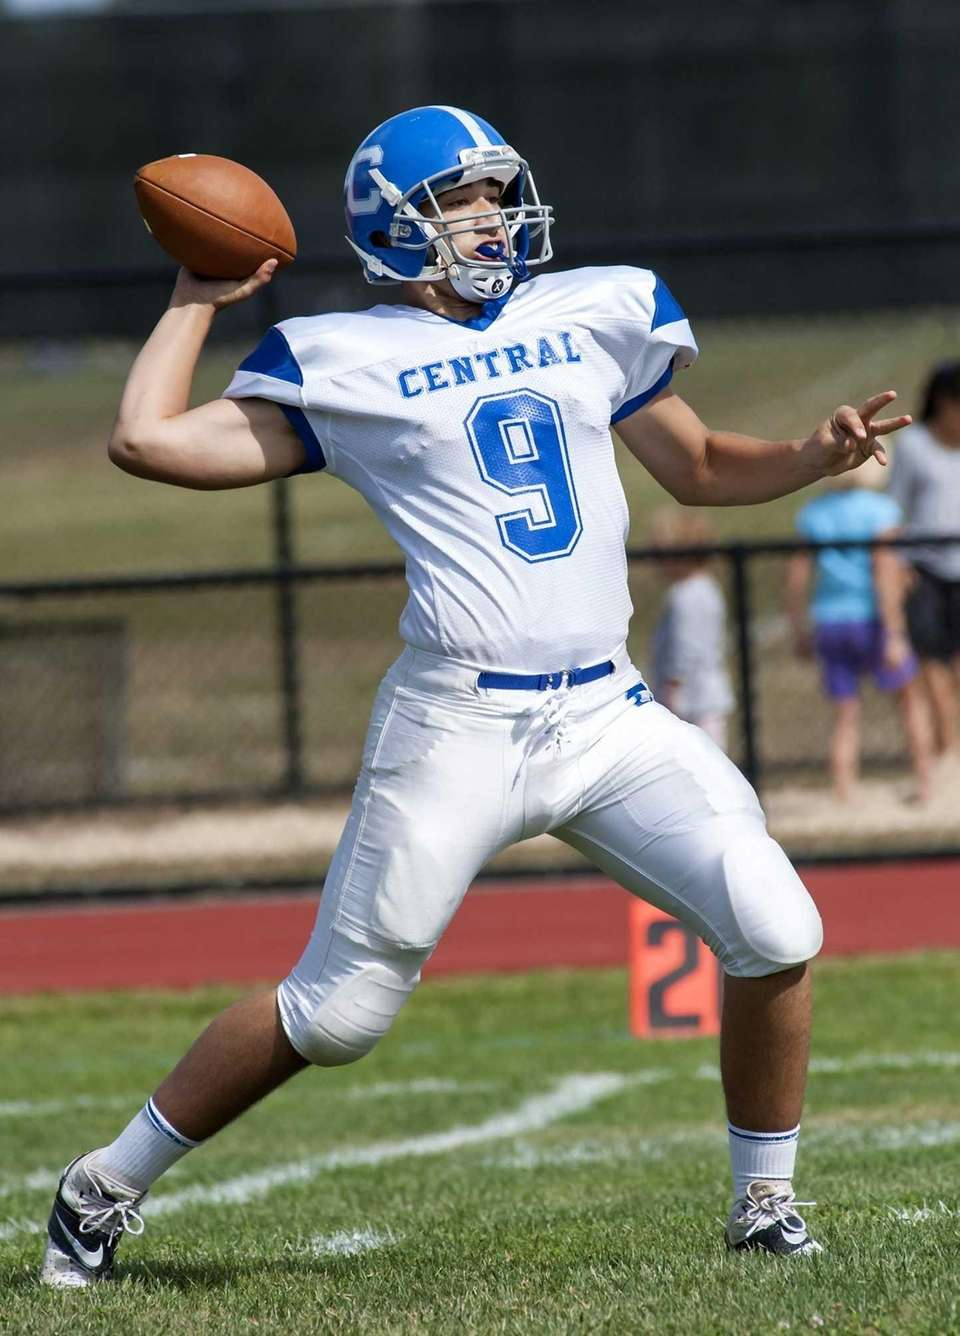 Valley Stream Central's quarterback Vito Friscia looks to